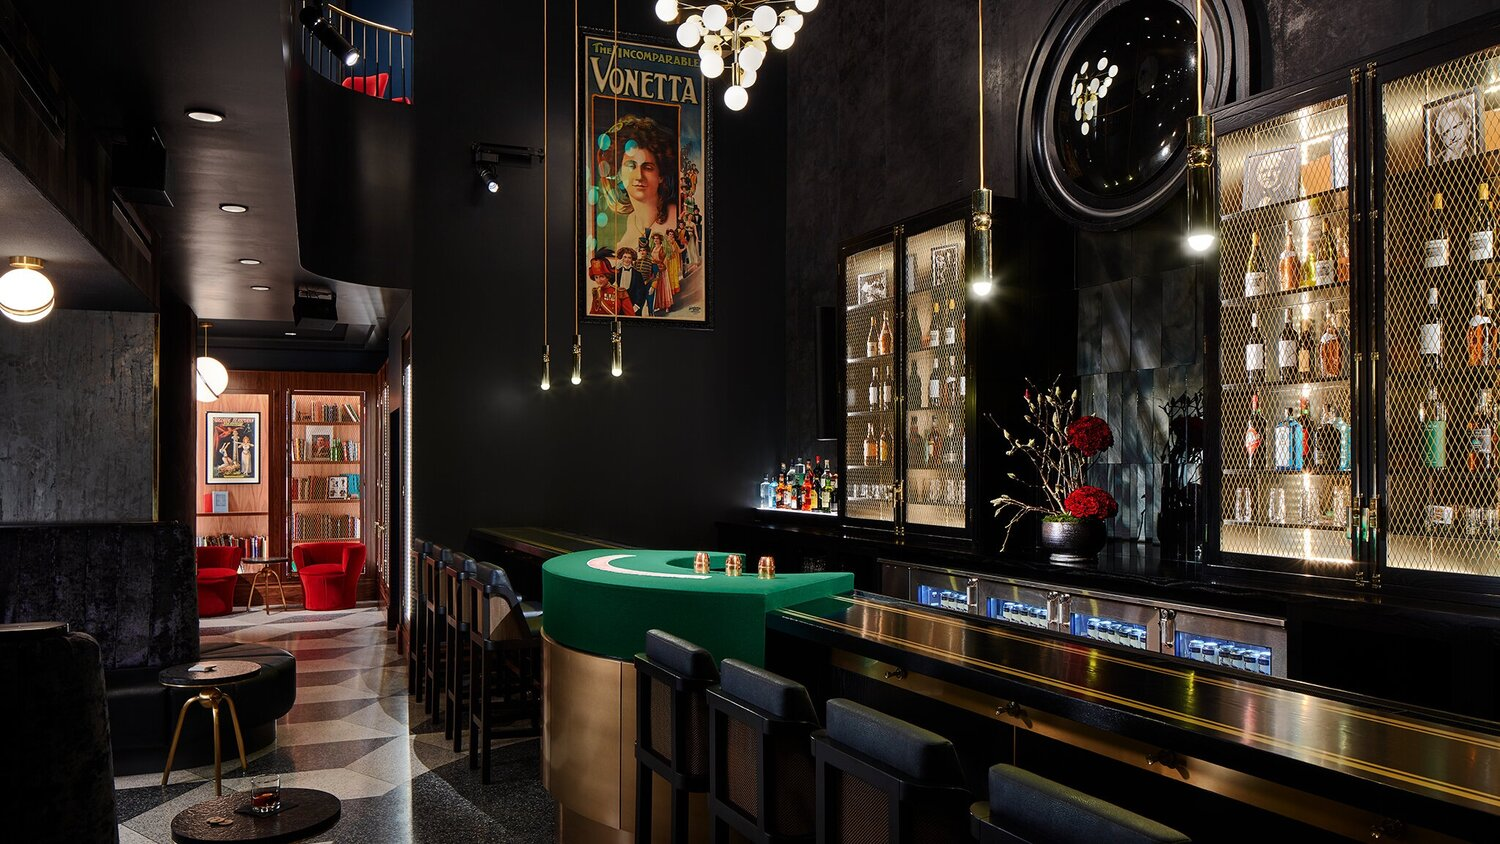 The Performance Bar - Intimate Cocktail Lounge, PErfect for Smaller Gatherings